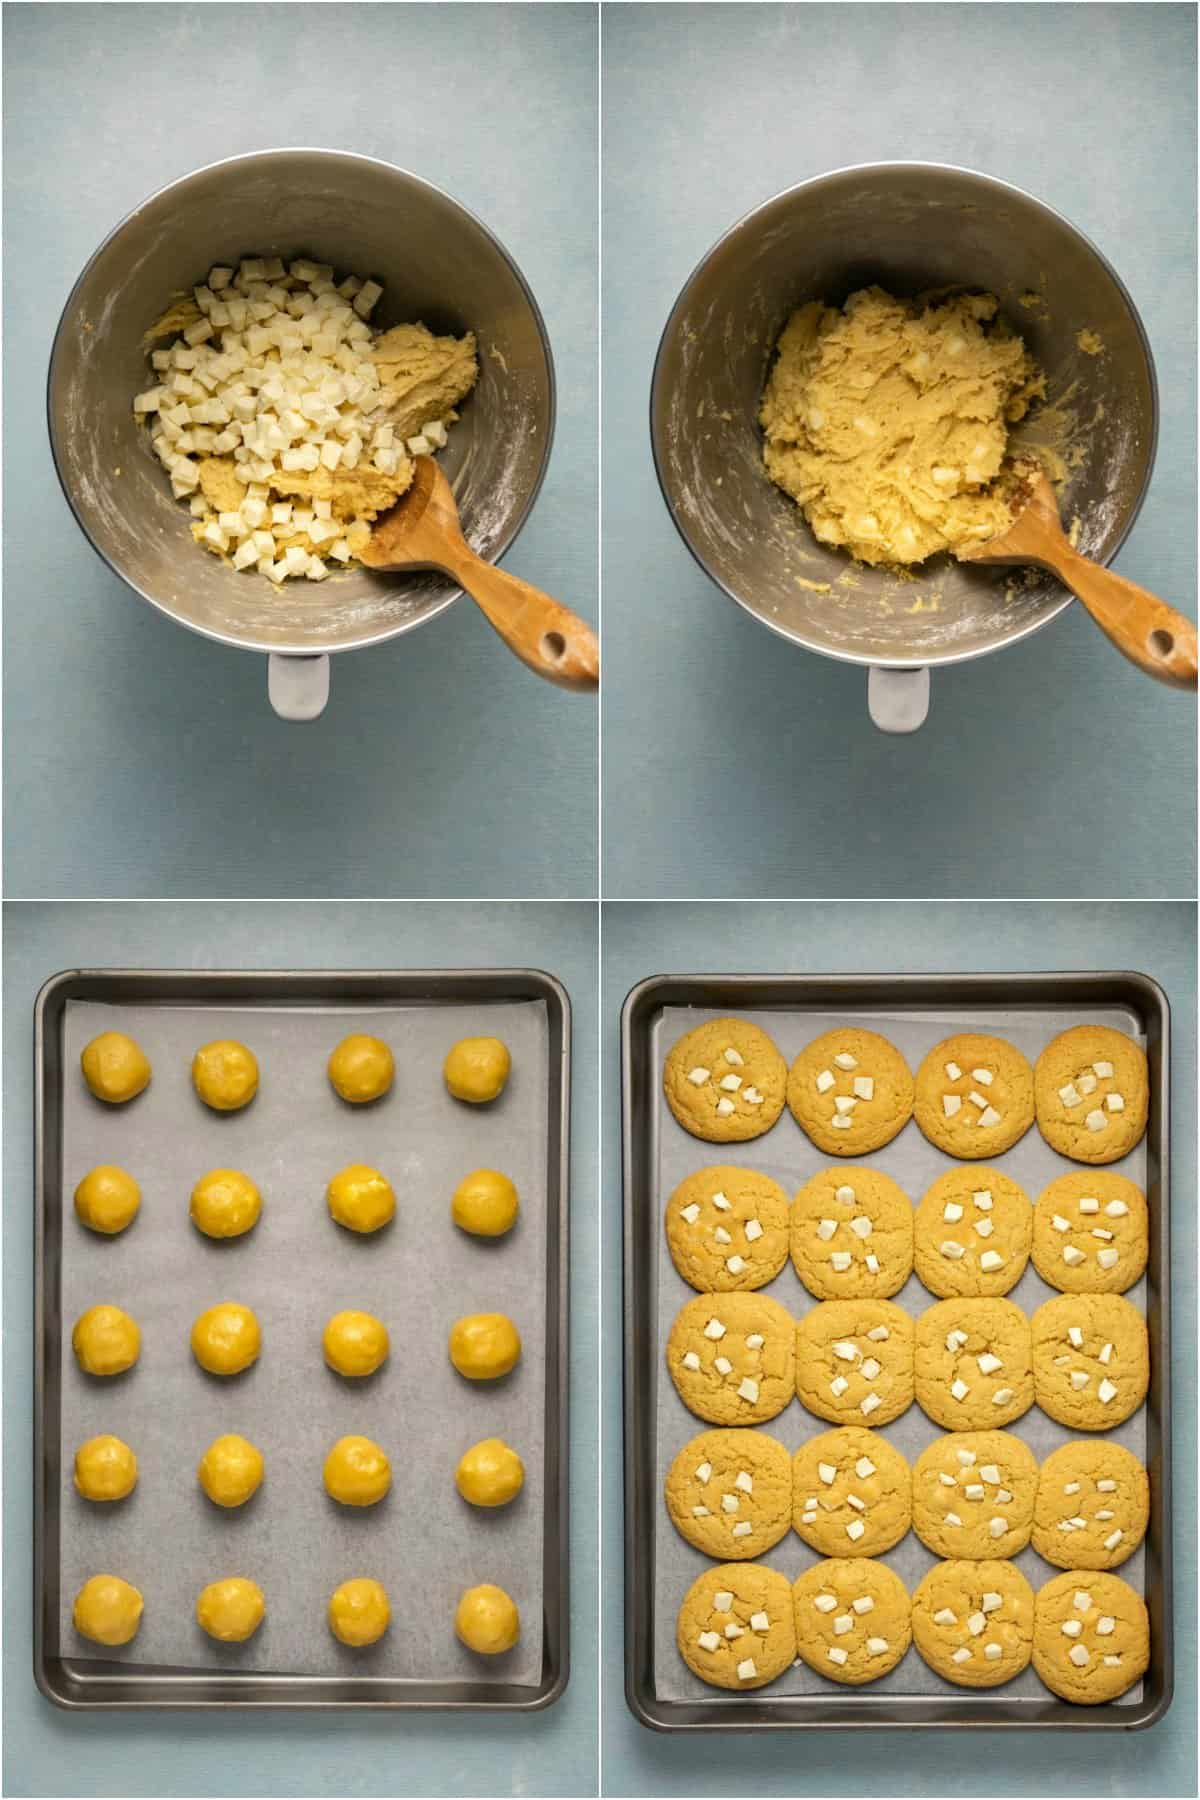 Step by step process photo collage of making white chocolate chip cookies.